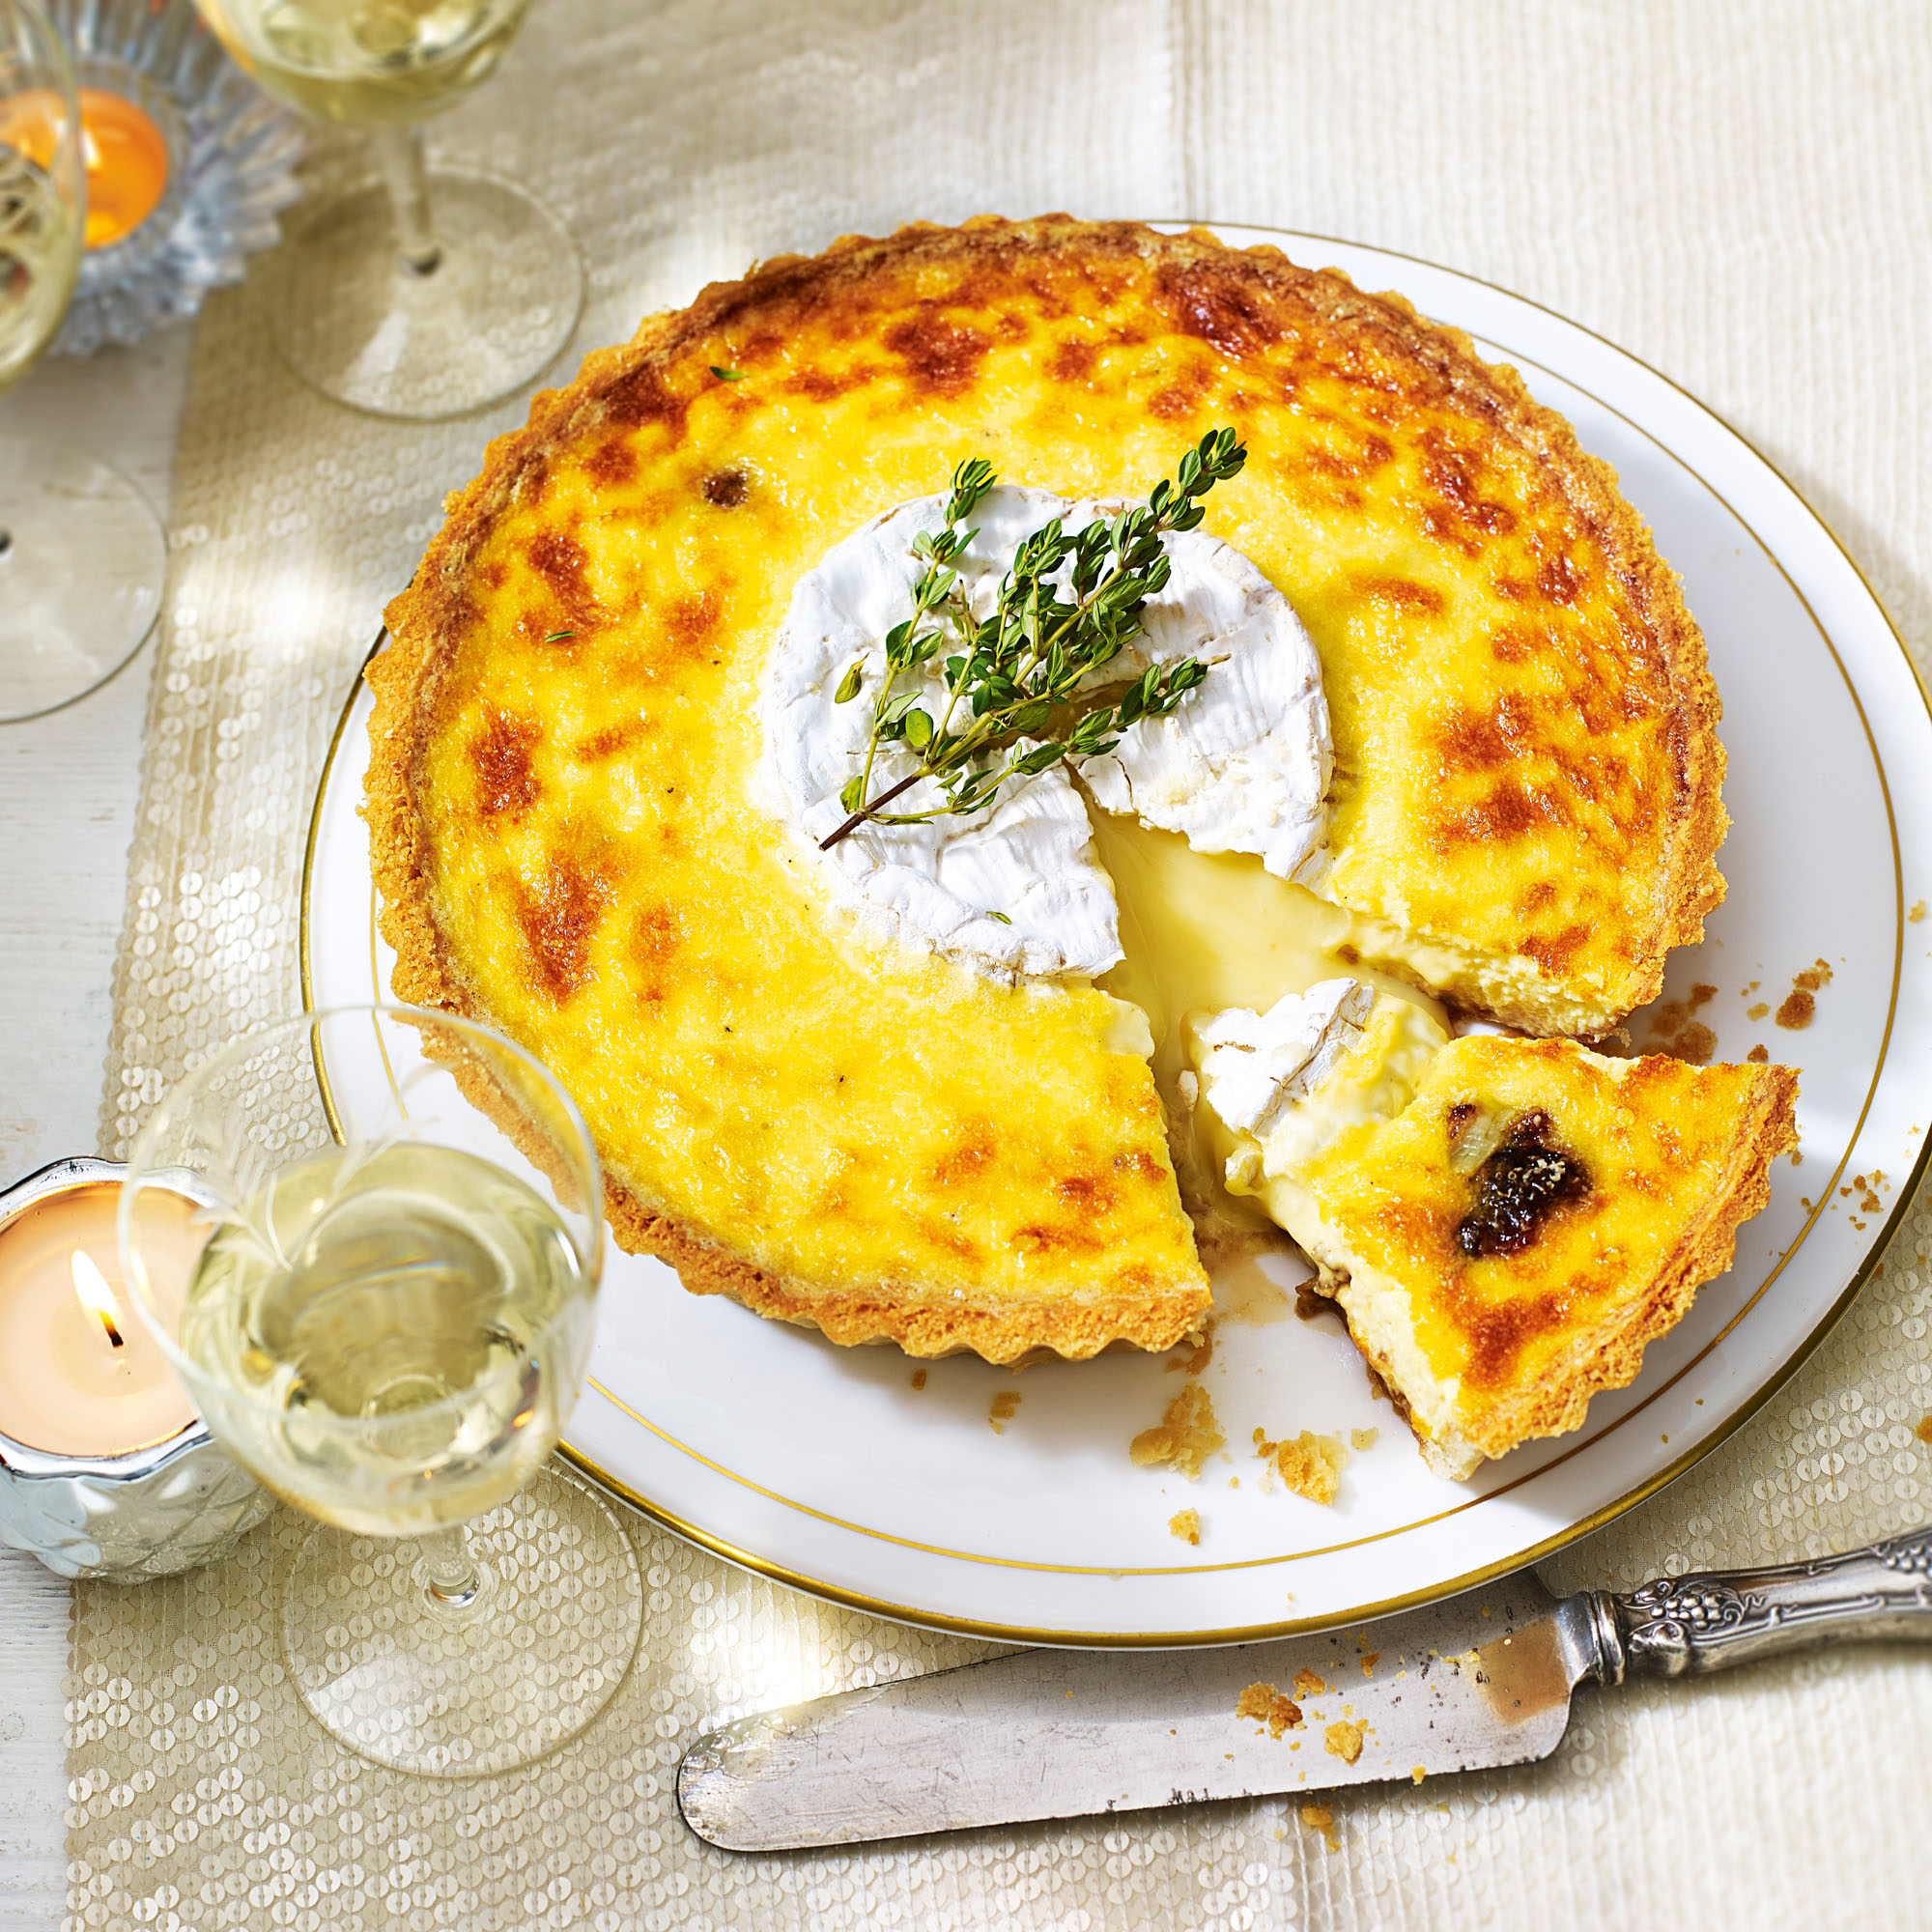 Communication on this topic: Smoked Haddock, Gruyère and Saffron Tart Recipe, smoked-haddock-gruy-re-and-saffron-tart-recipe/